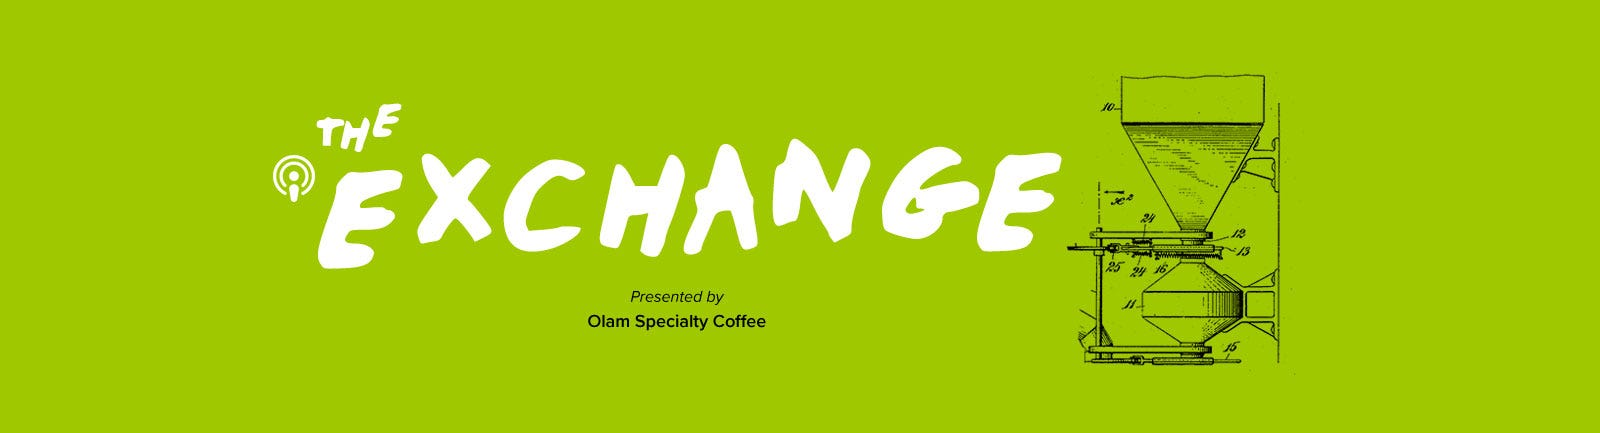 The Exchange by Olam Specialty Coffee